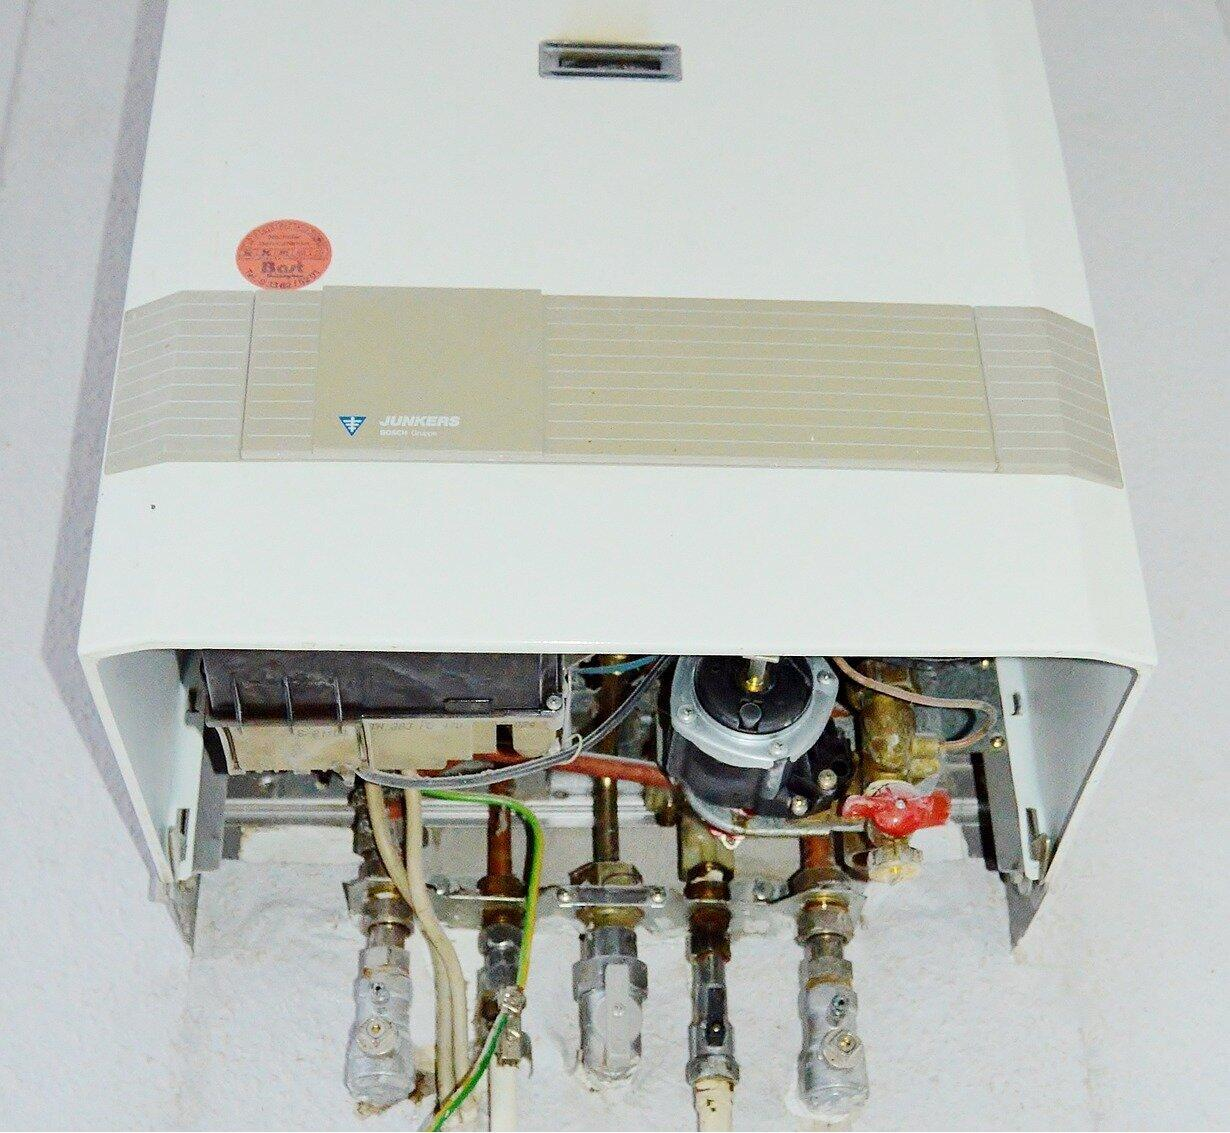 Benefits of tankless water heaters you may not know about